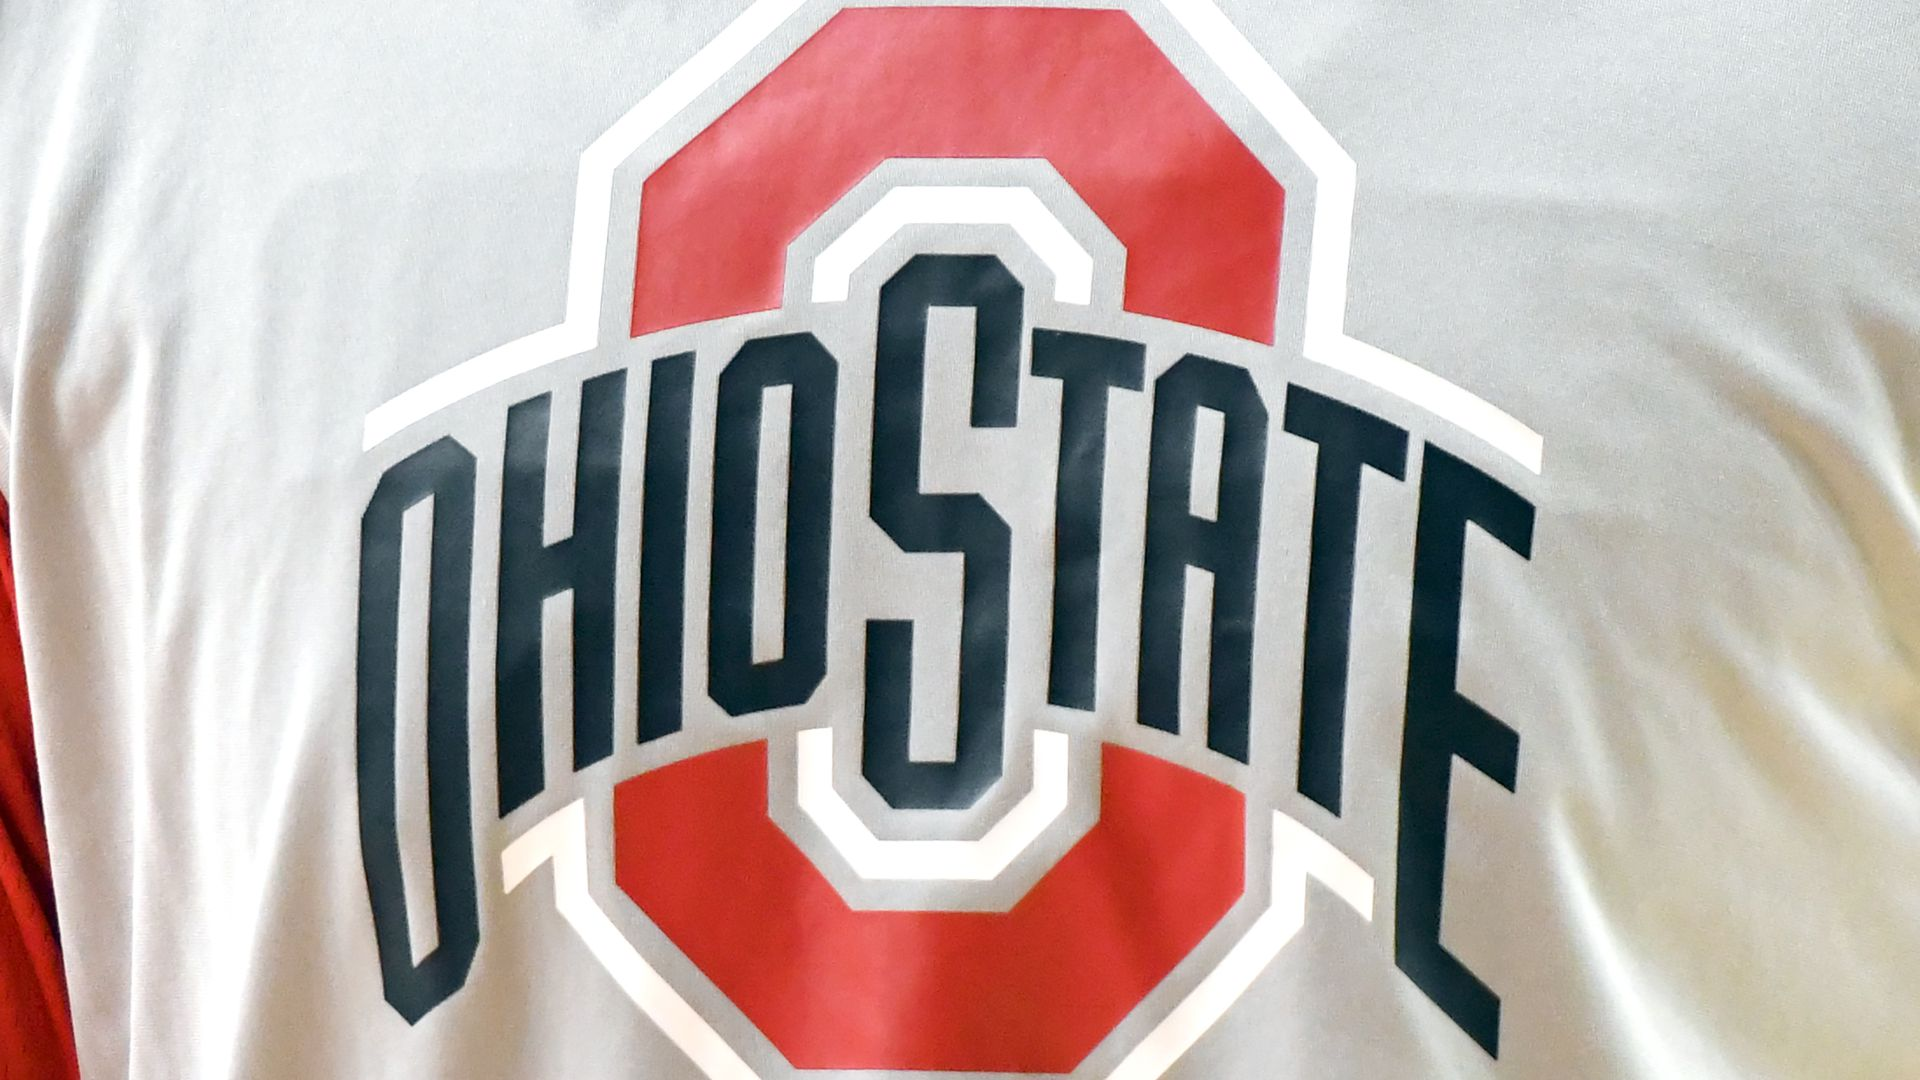 In this image, a T-Shirt displays the Ohio State logo.